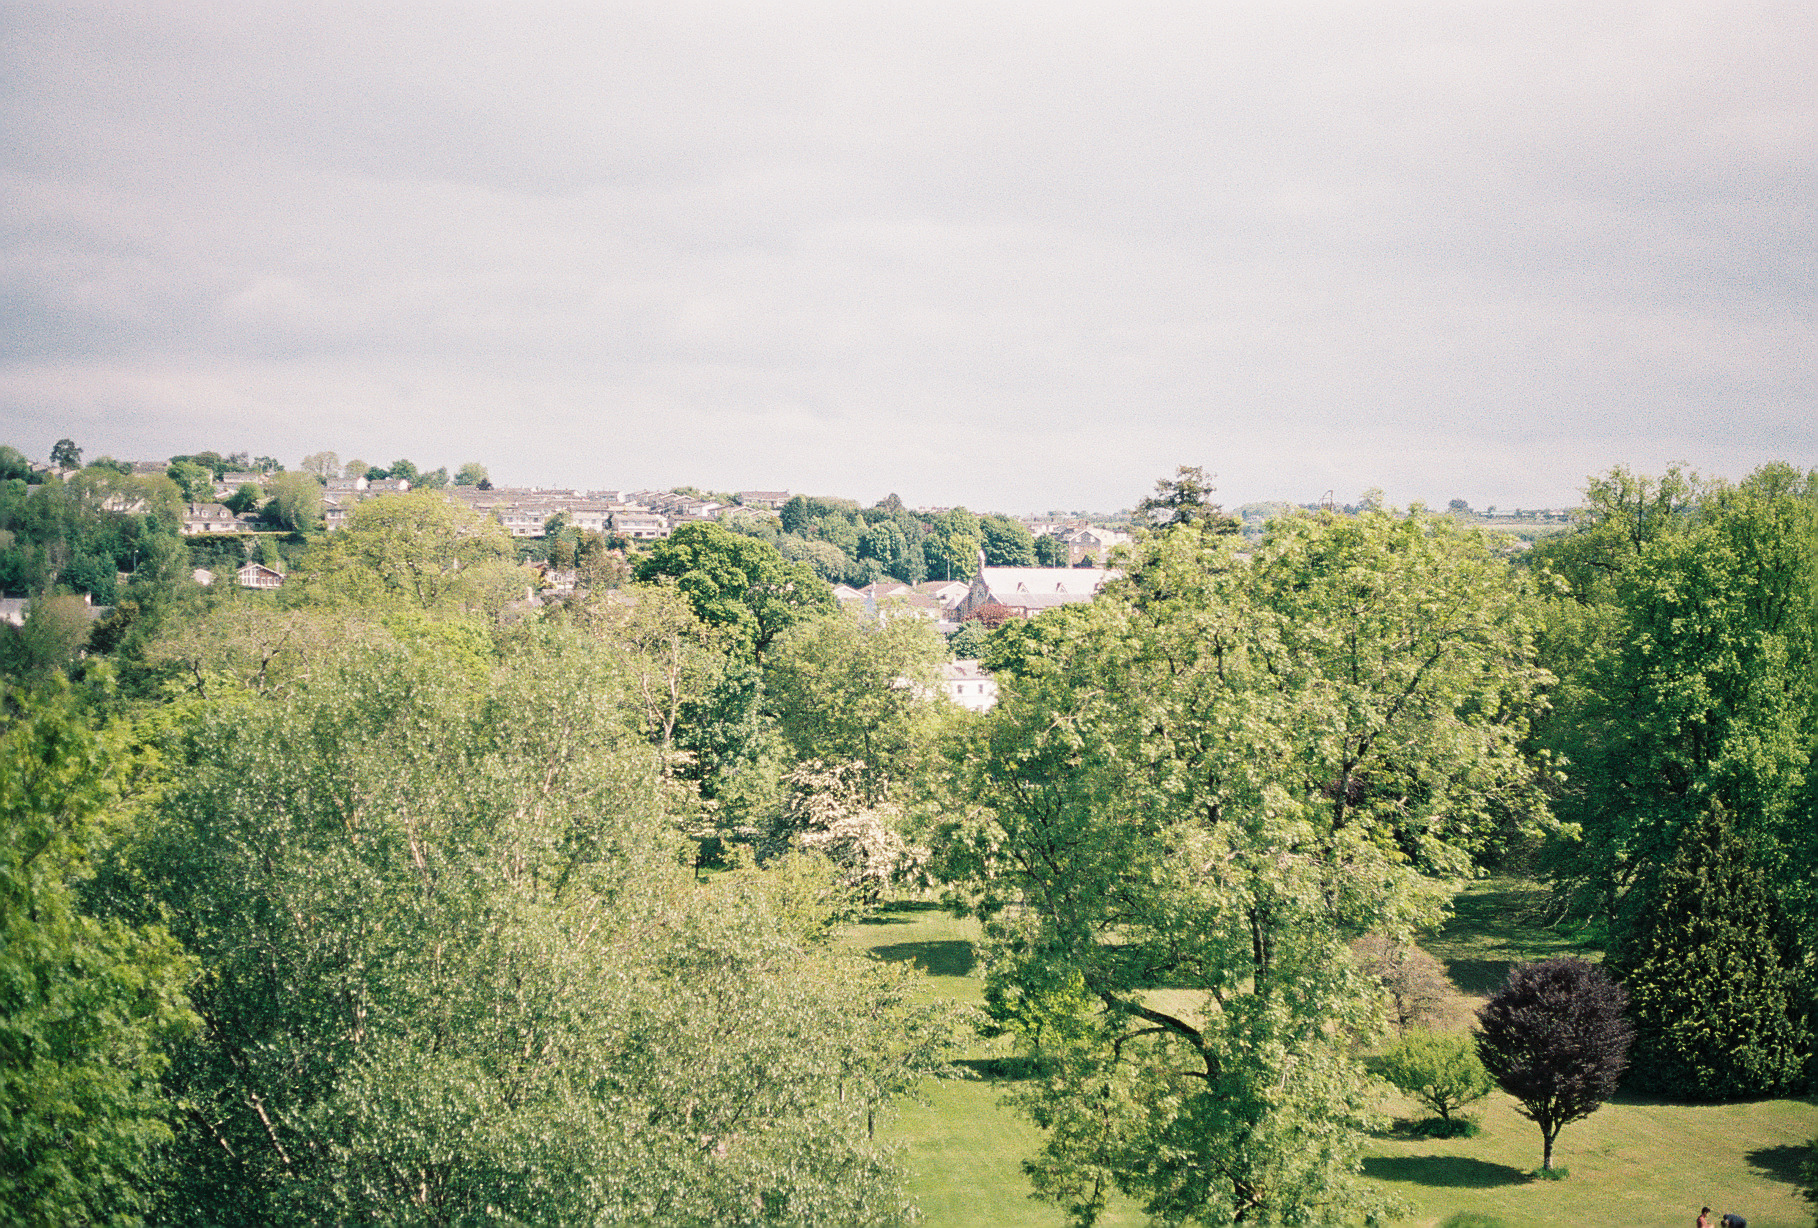 view-from-top-of-blarney-castle-ireland-european-honeymoon